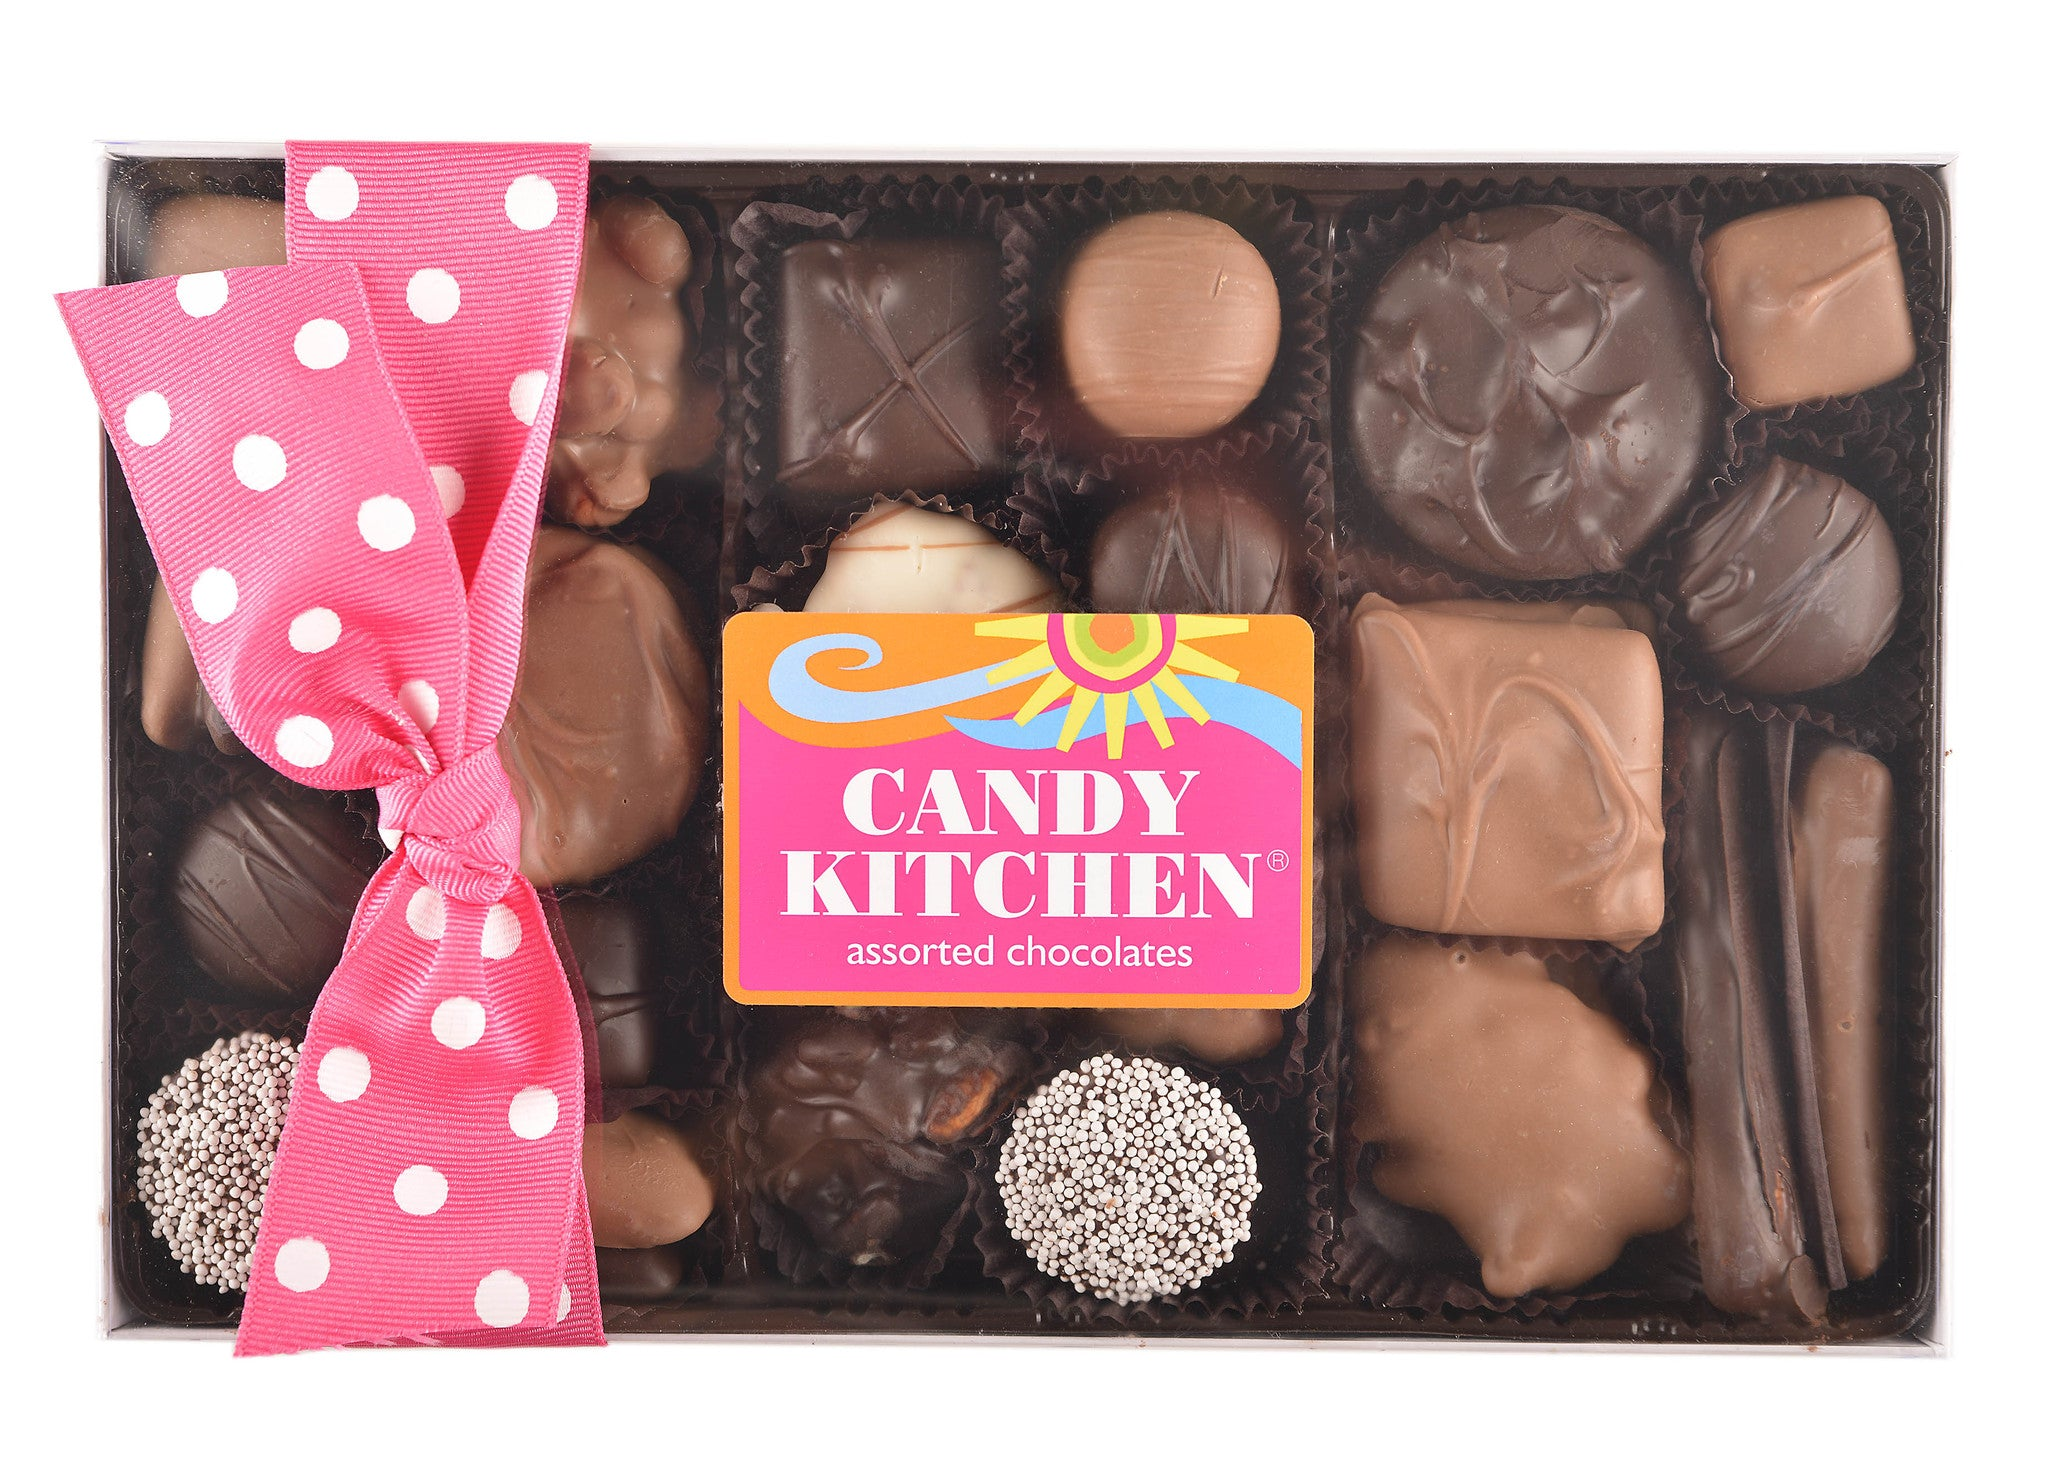 Awe Inspiring Candy Kitchen Taffy Chocolate Gummies More Candy Interior Design Ideas Helimdqseriescom